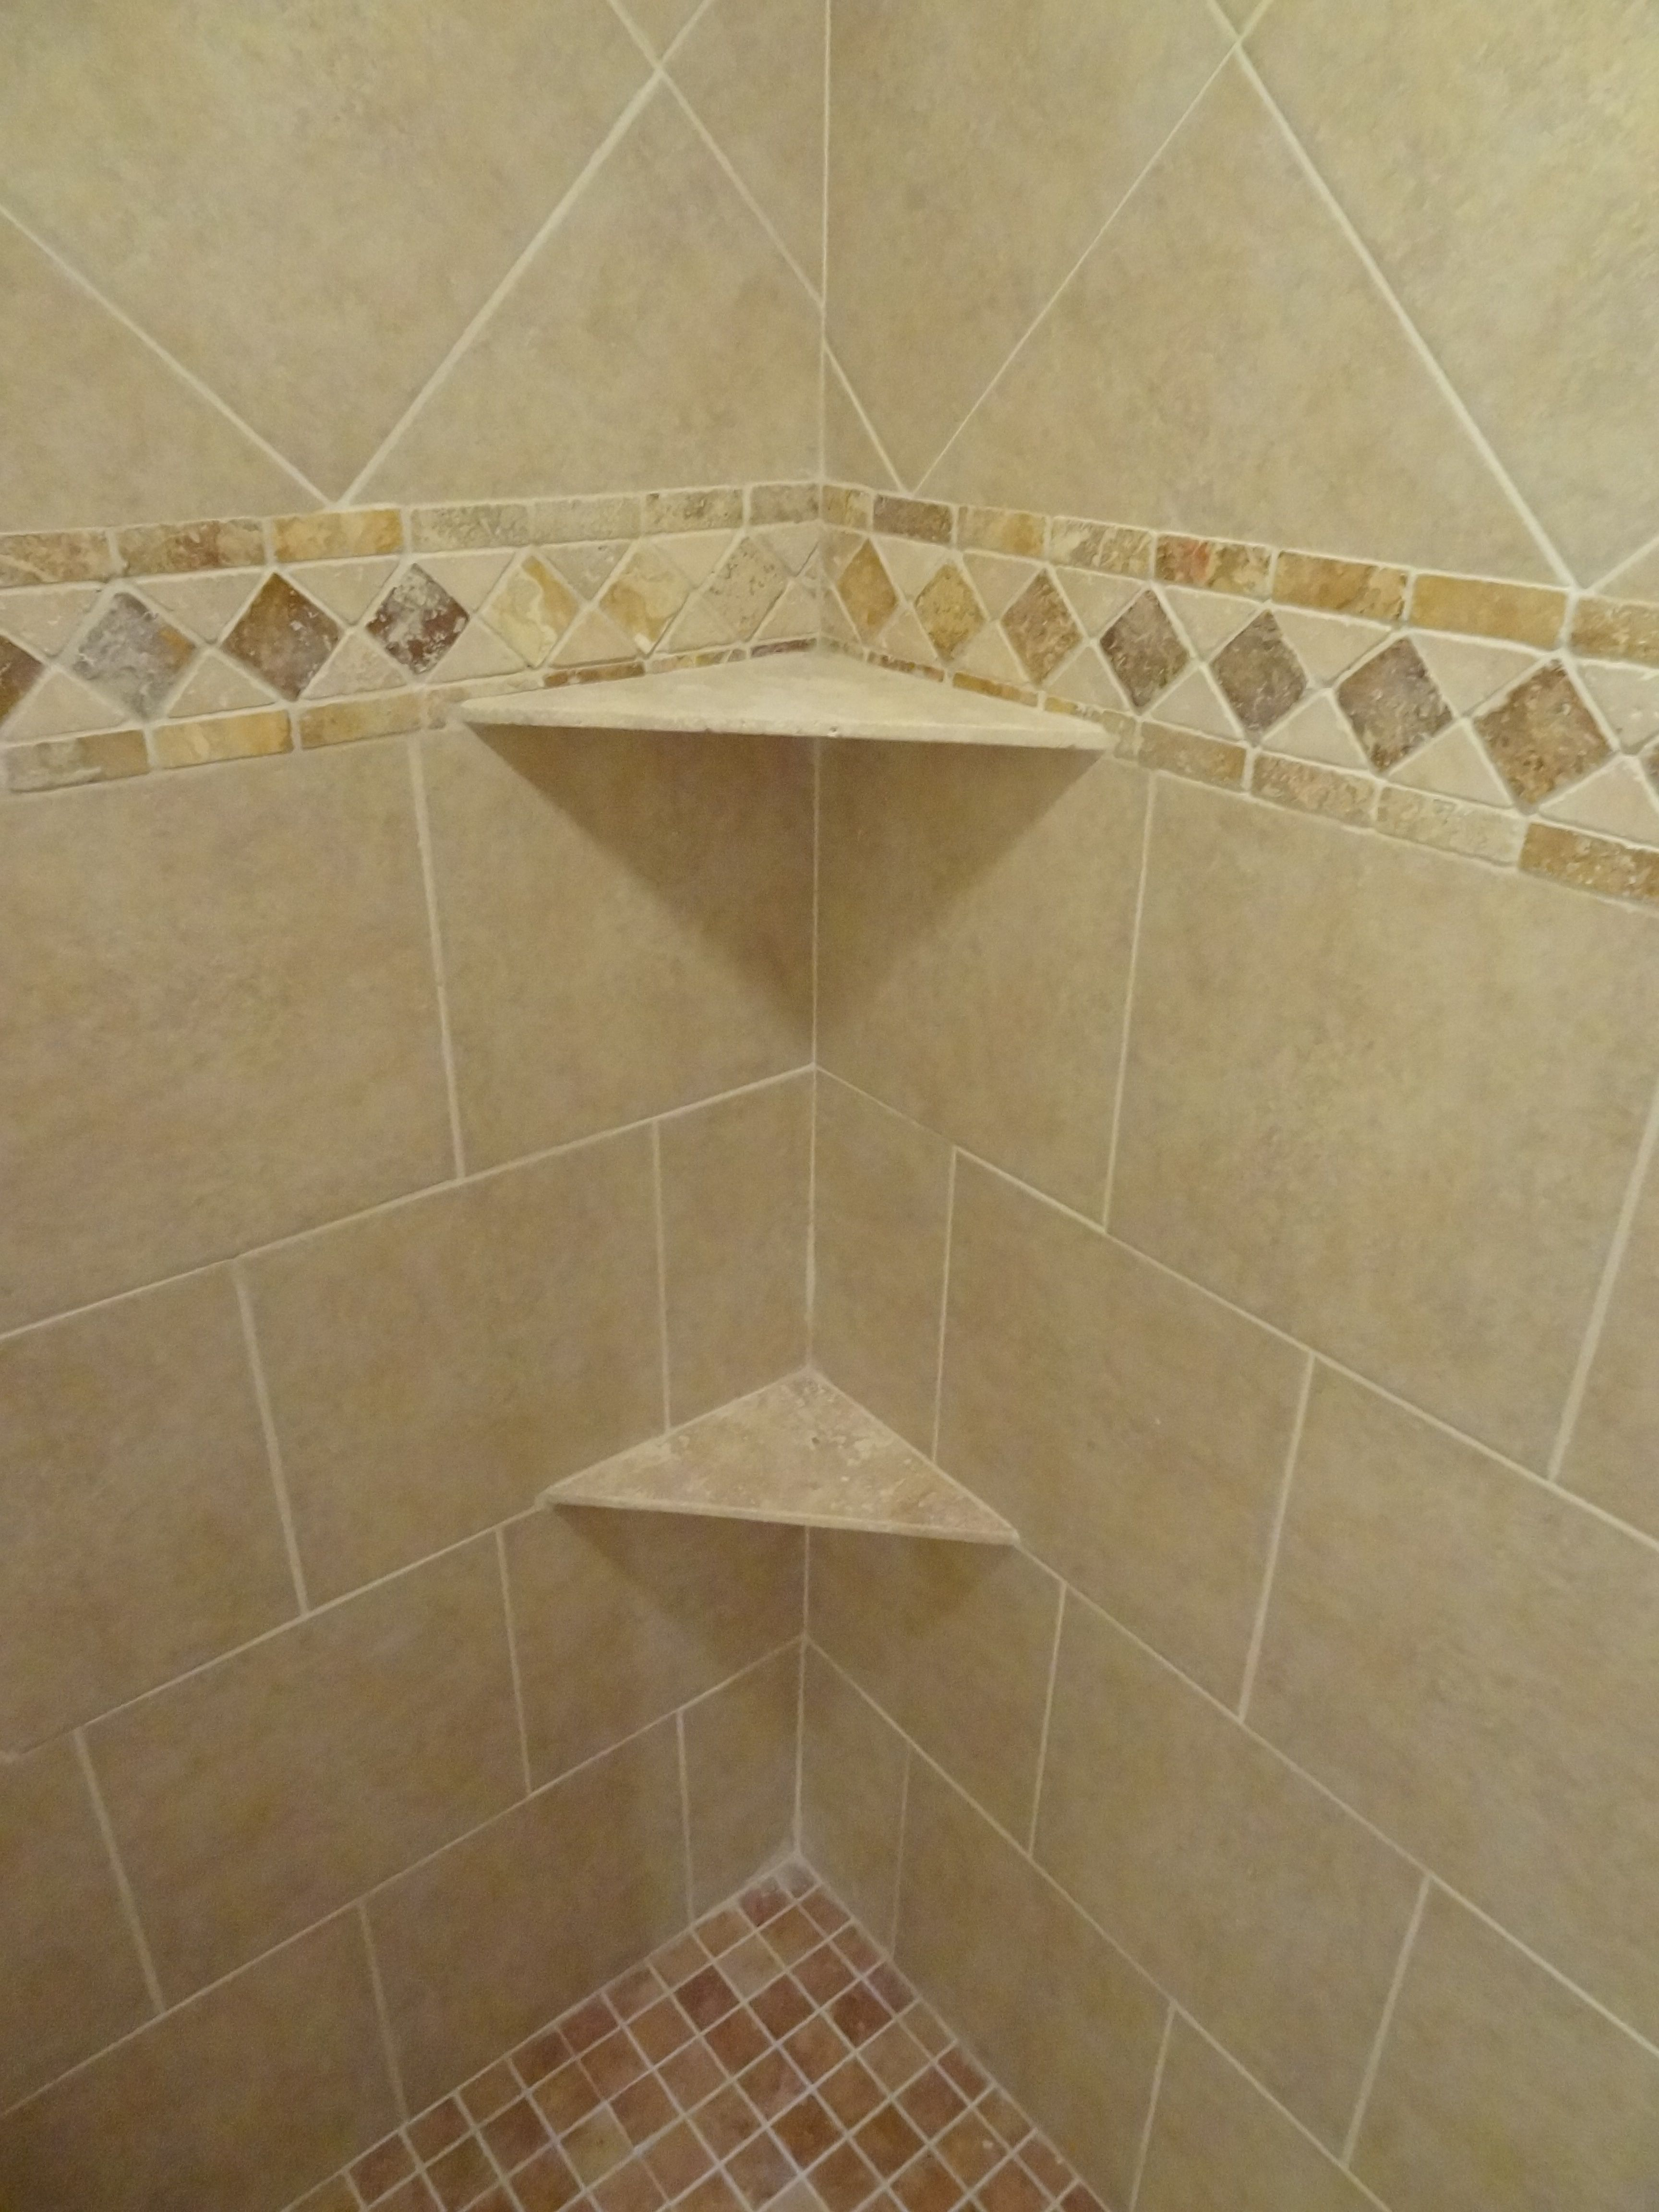 Our Own Ceramic Shower Wall And Floor Tile Border Detail And